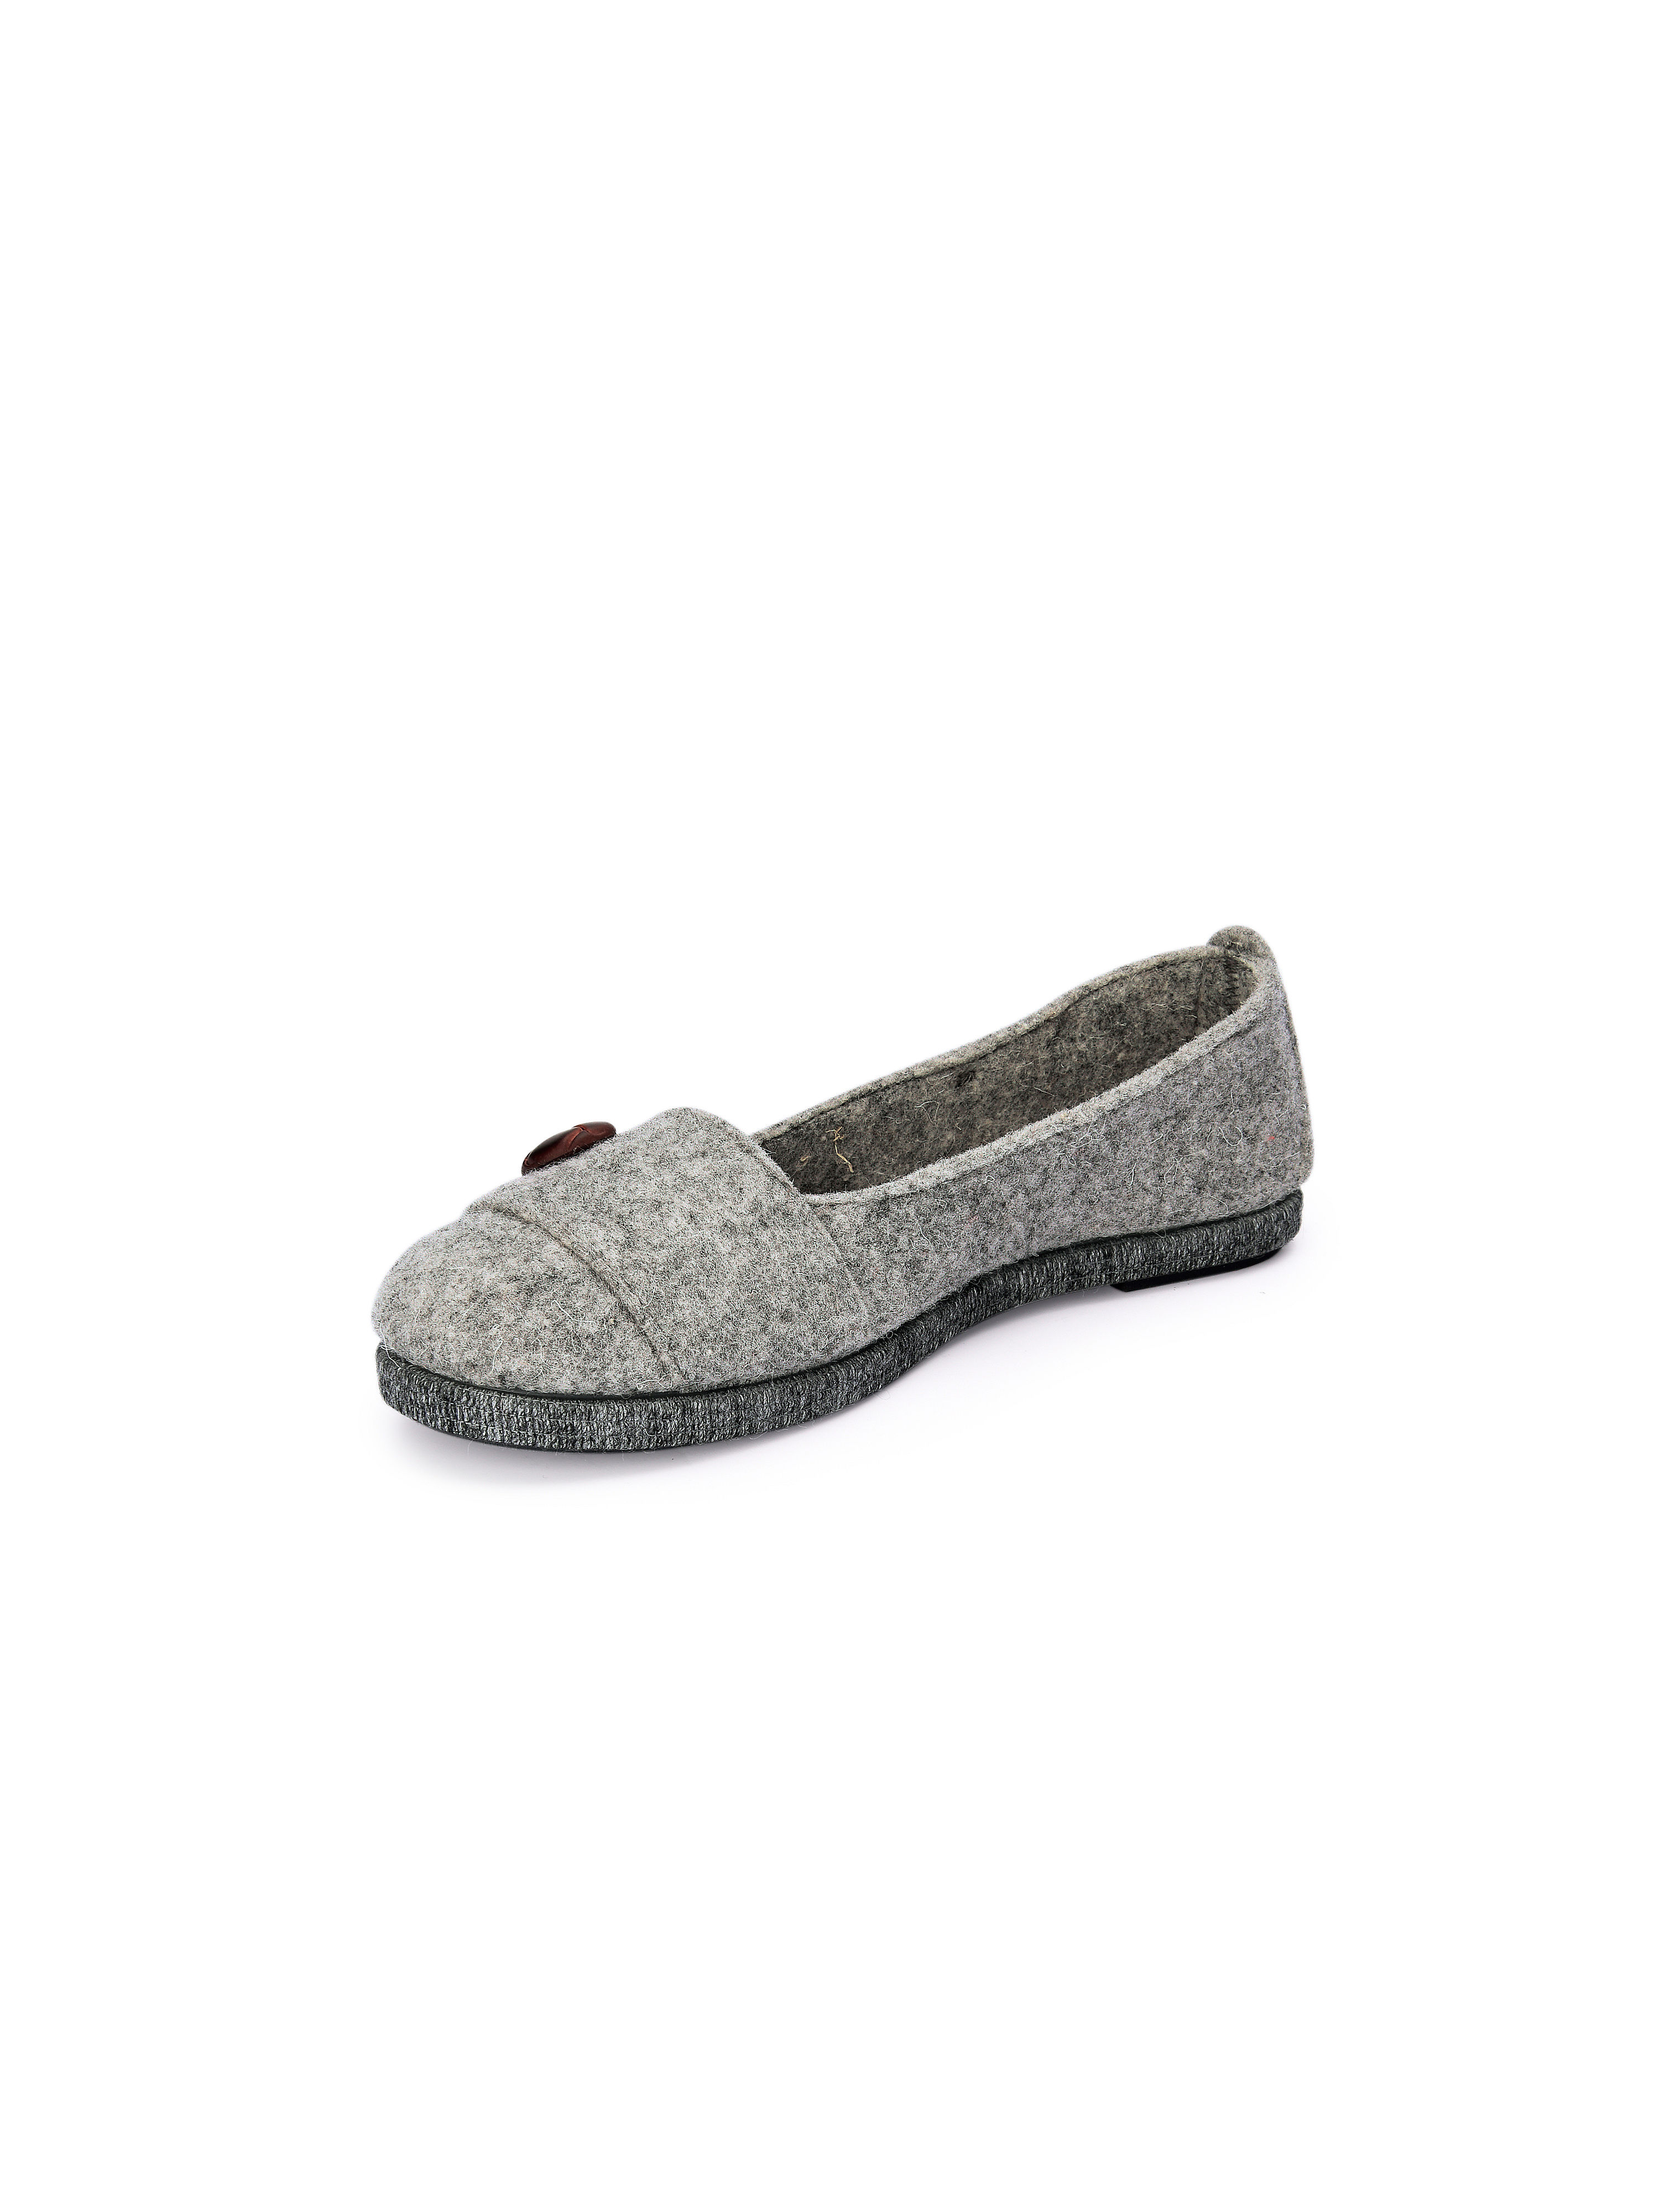 Les ballerines Shepherd gris taille 37